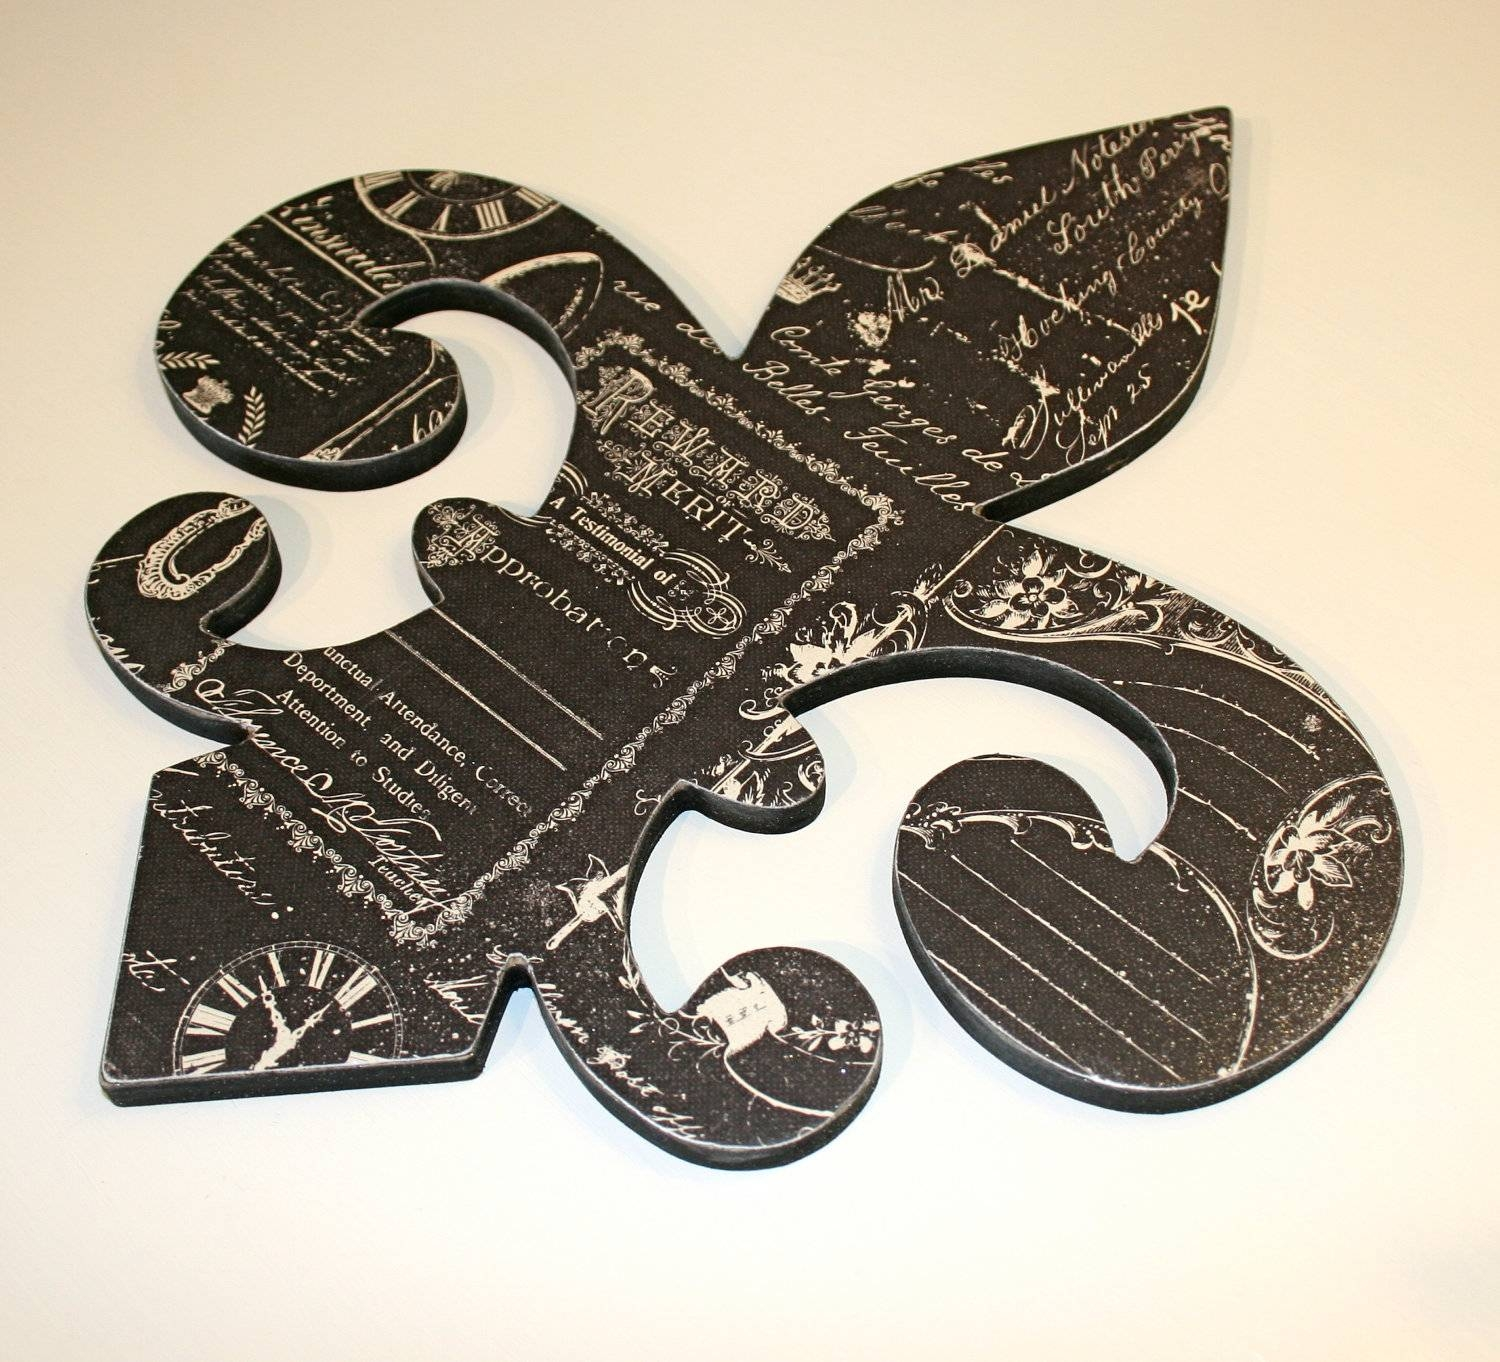 Fleur De Lis Wall Decor Mirror : Fleur De Lis Wall Decor – Design Regarding Most Popular Metal Fleur De Lis Wall Art (View 13 of 25)